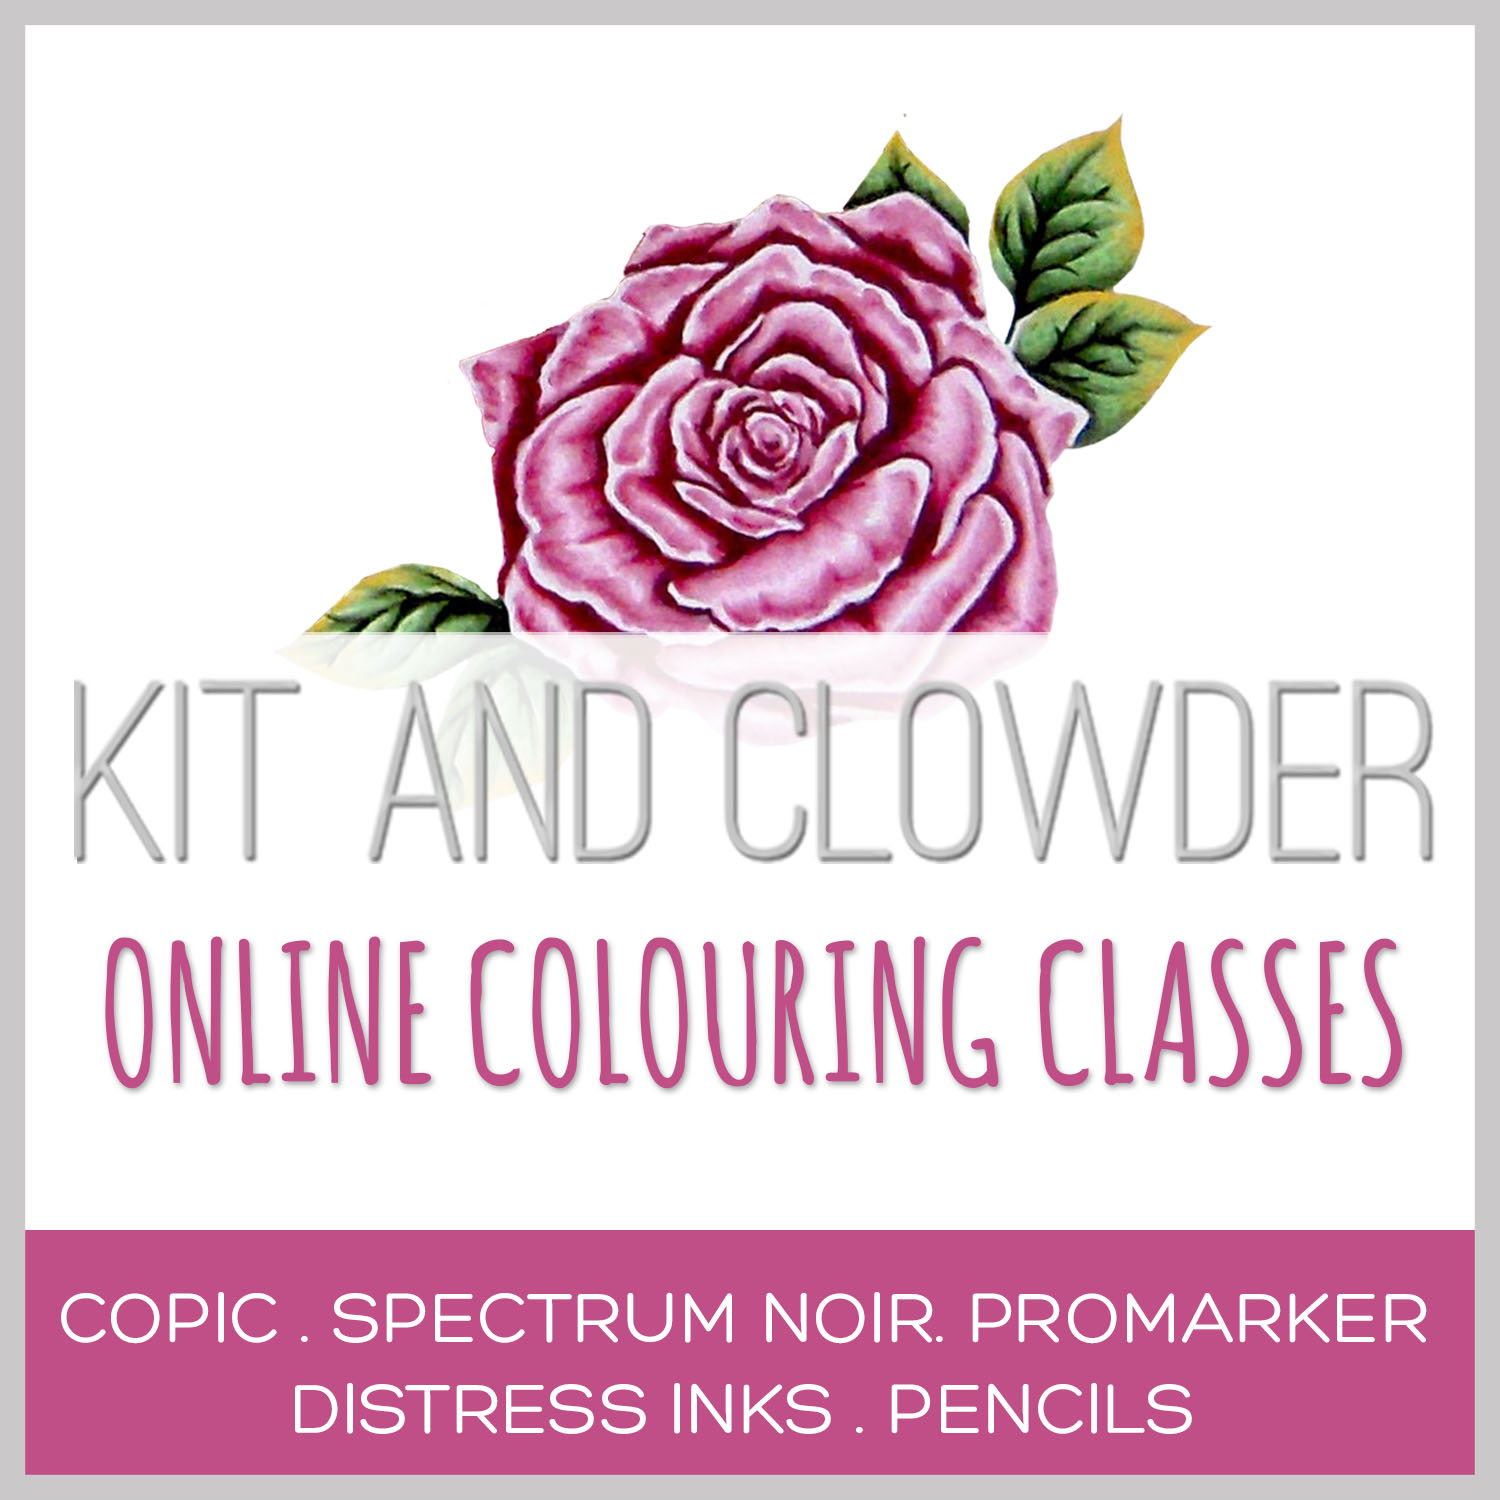 Online colouring class